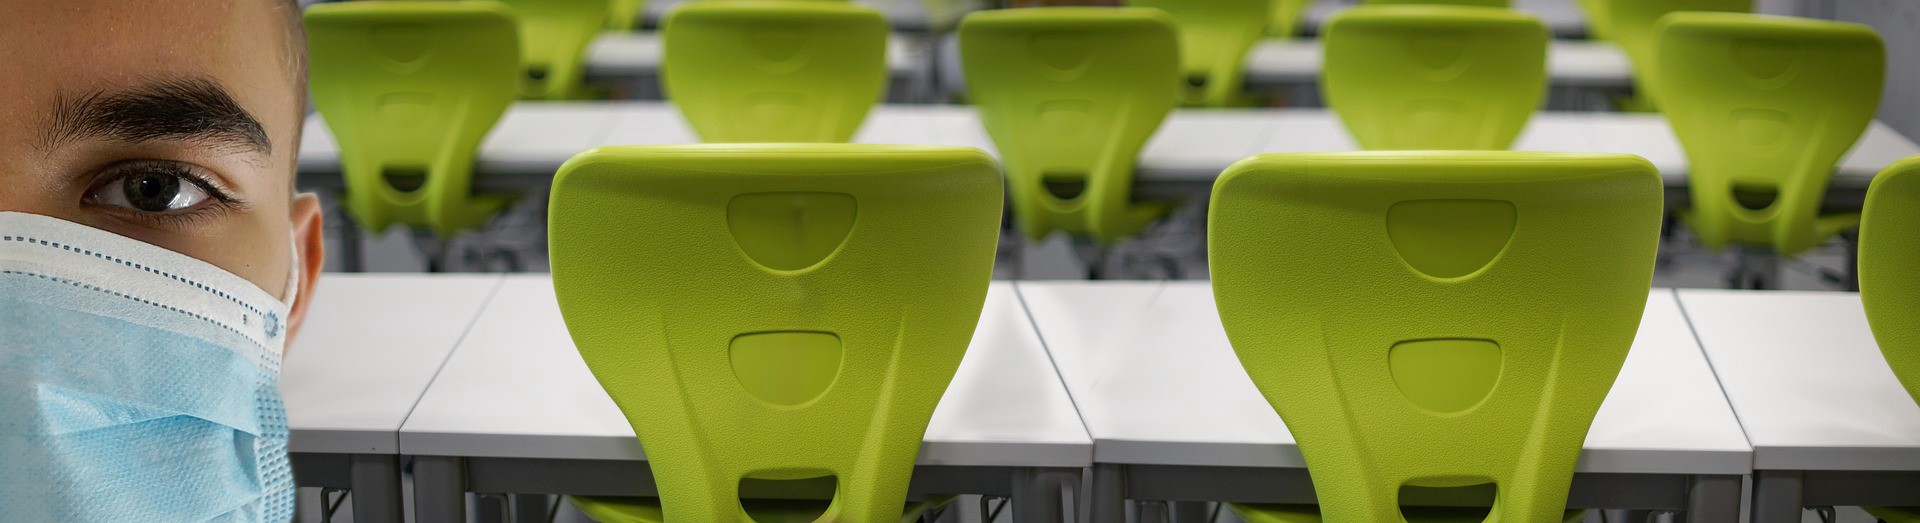 Rows of green chairs behind a person wearing a mask